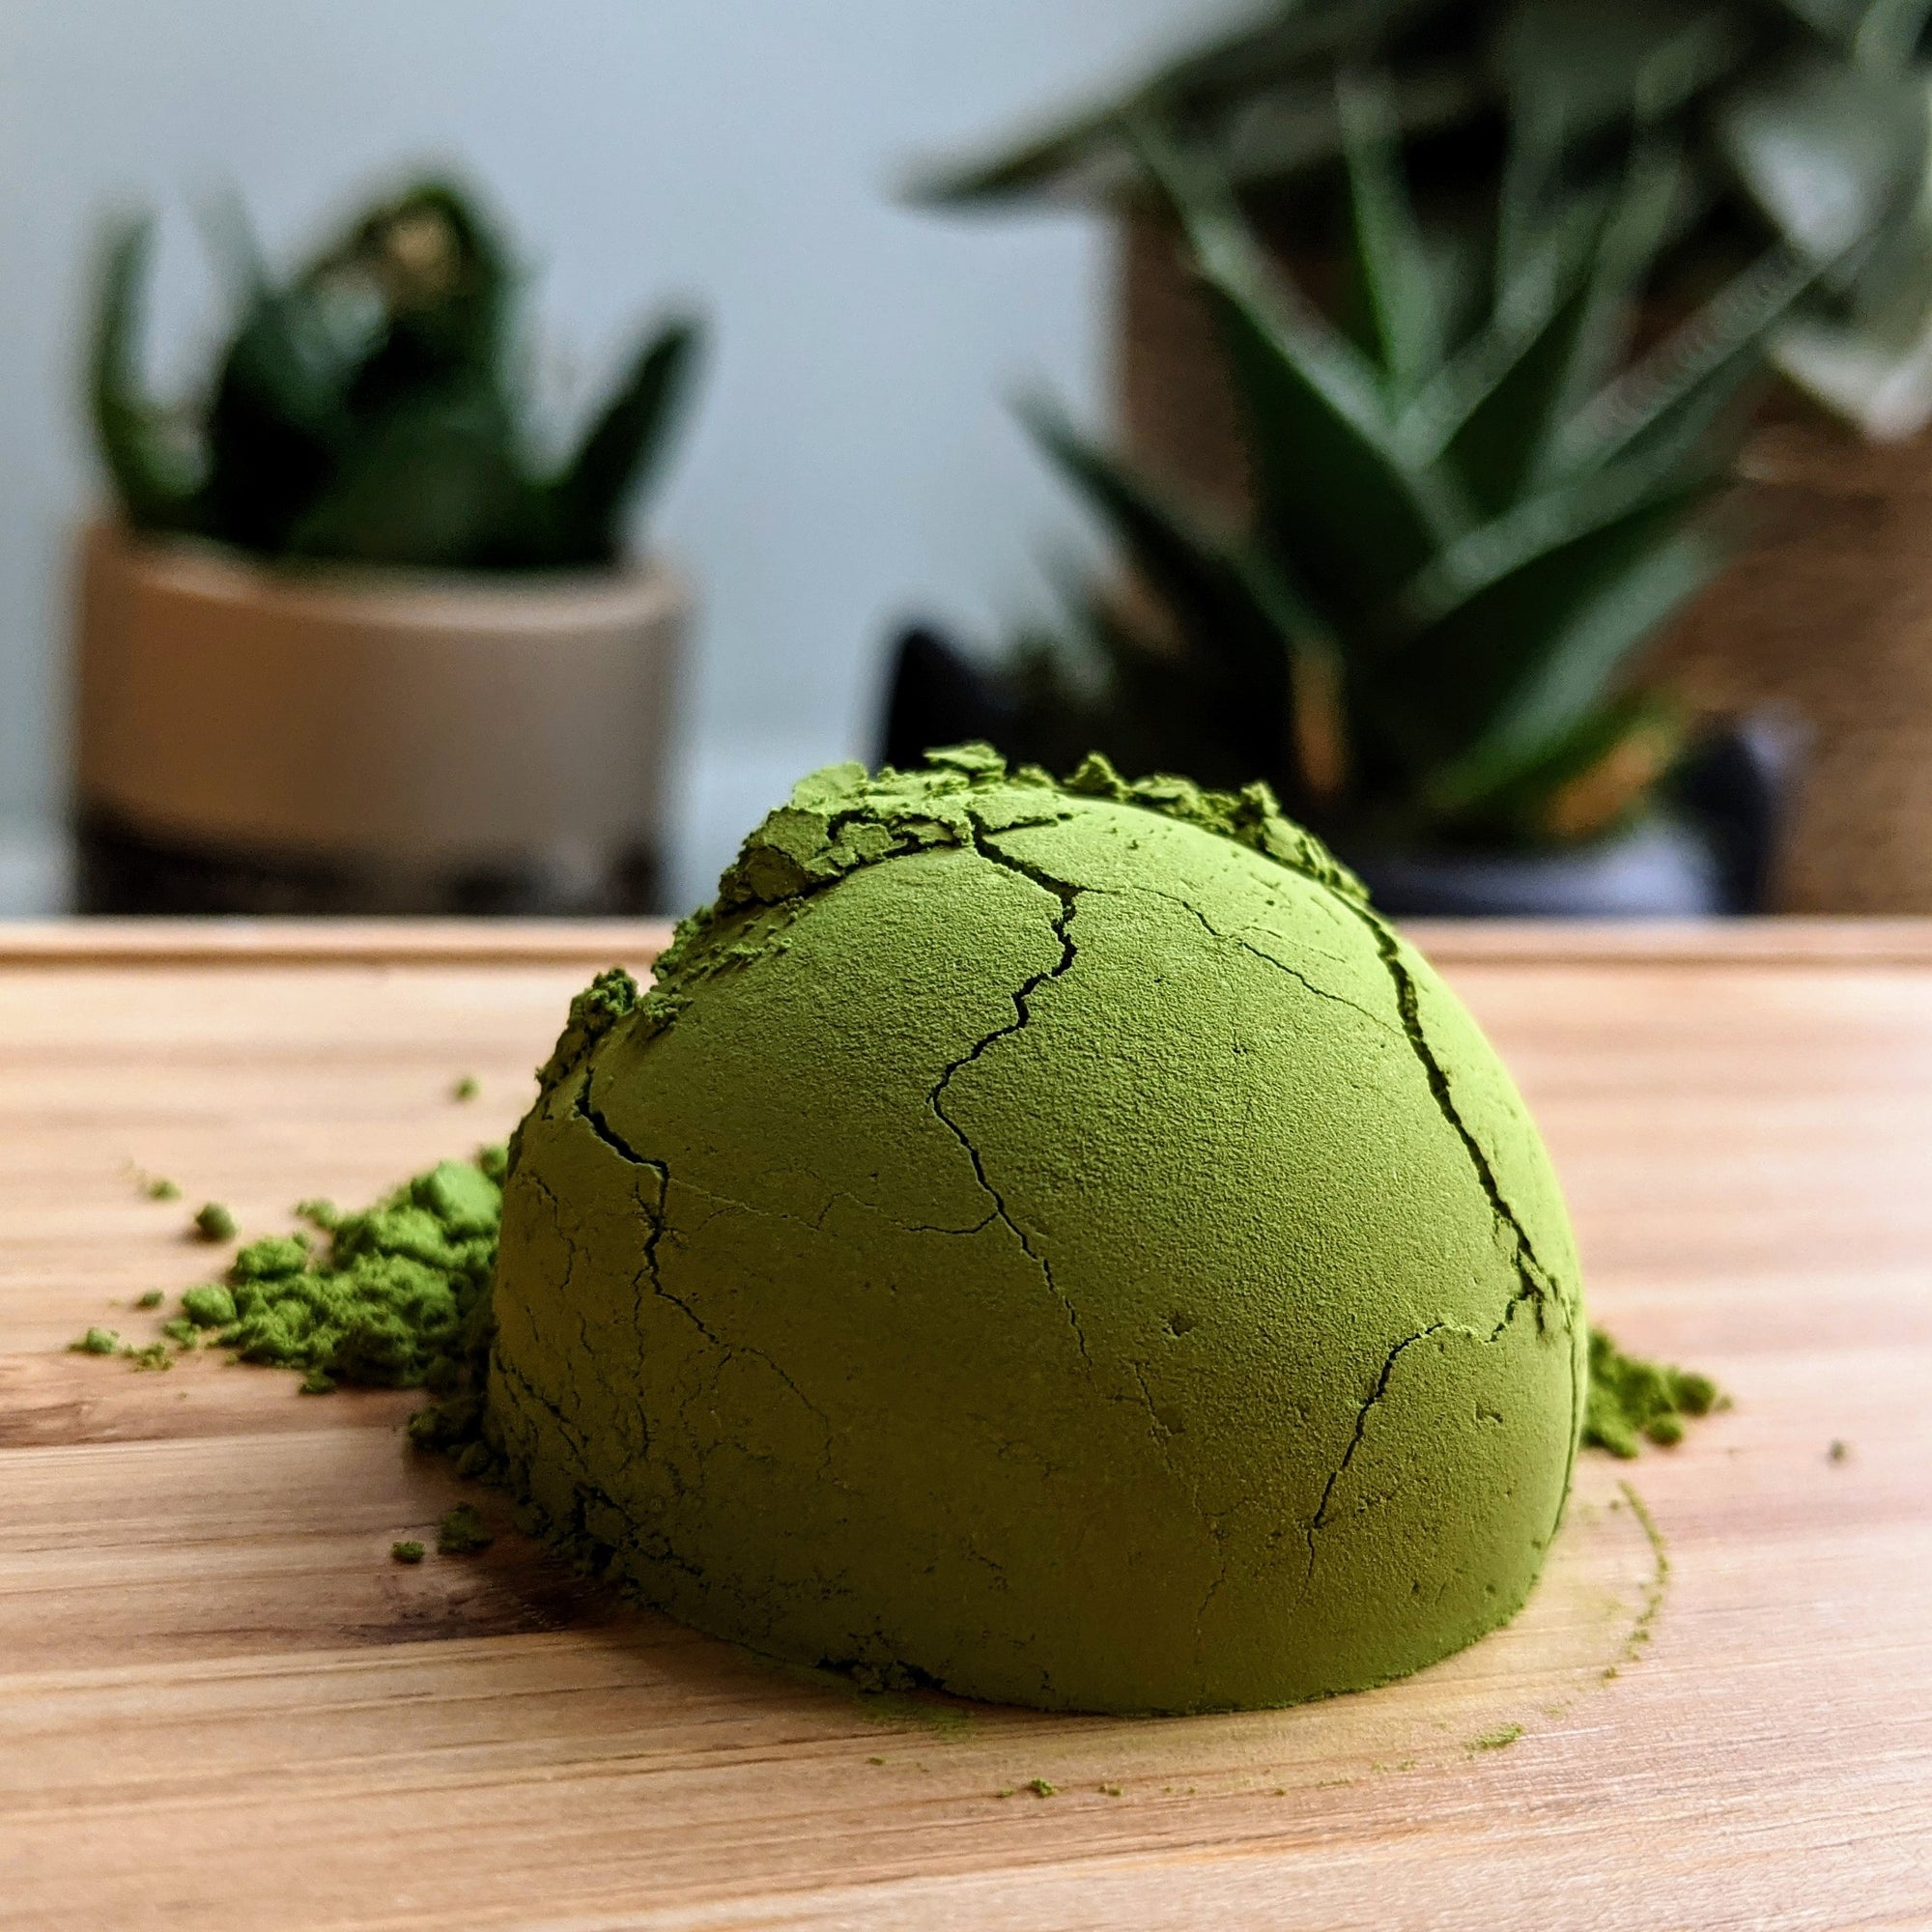 What's matcha made of?